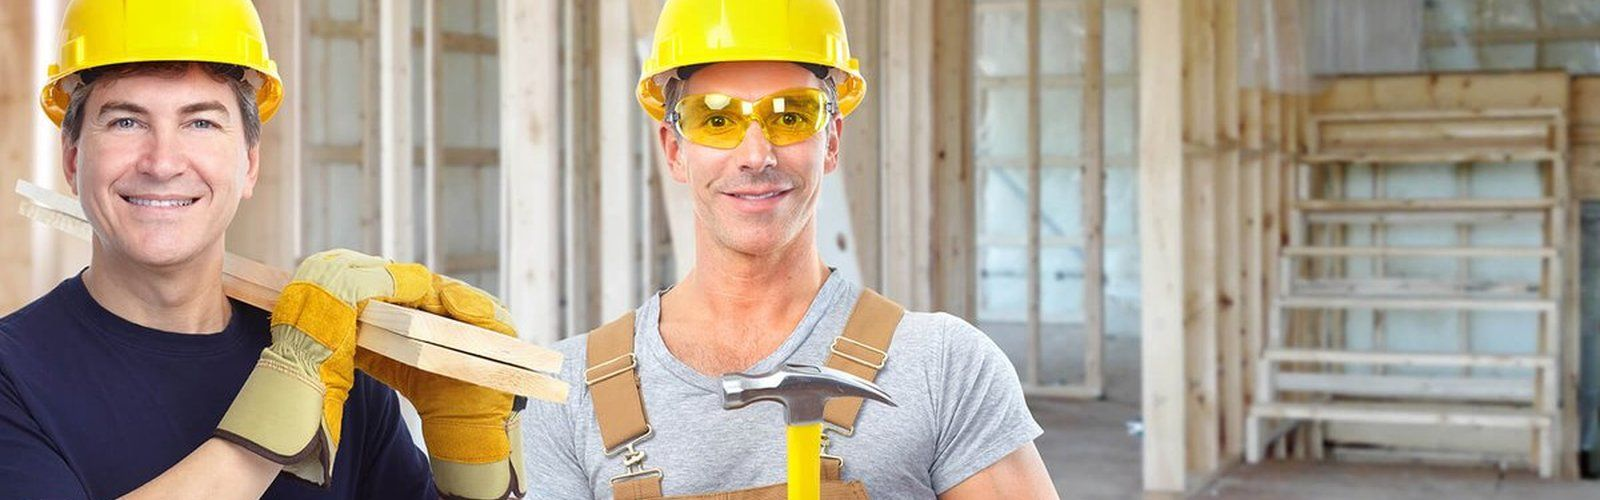 Contractor Licensing Made Simple